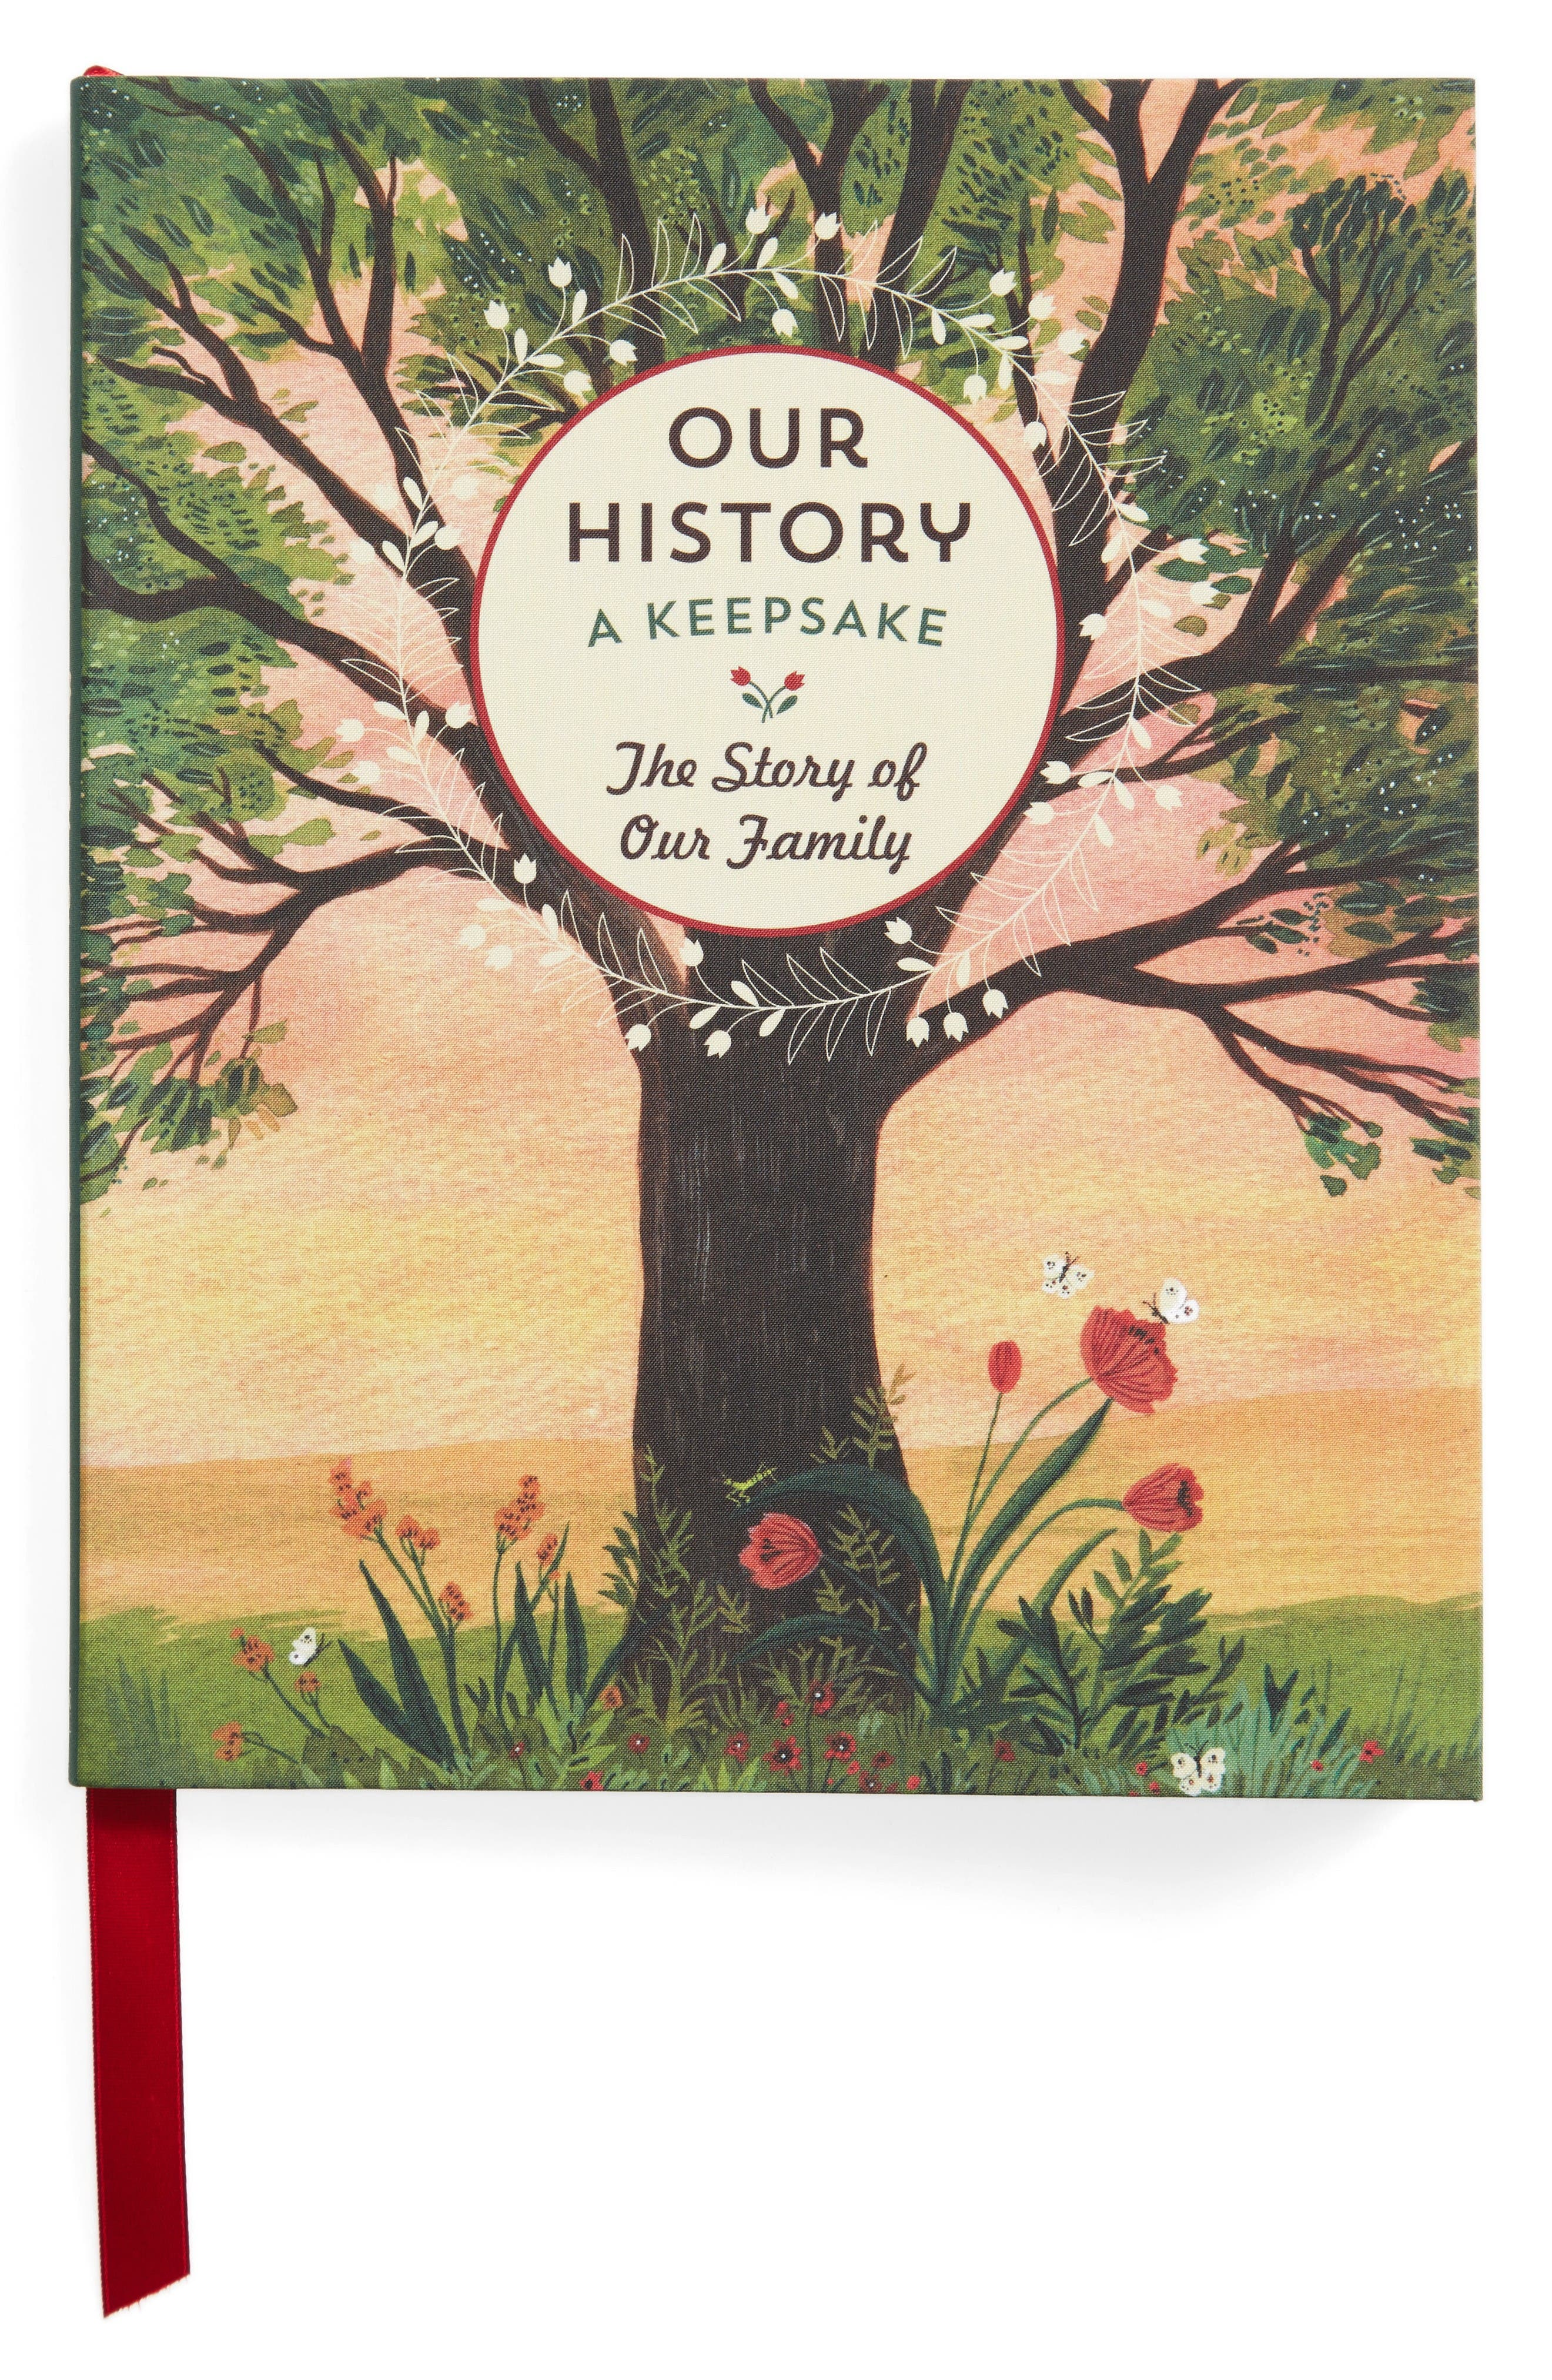 Alternate Image 1 Selected - Our History: The Story of Our Family Journal